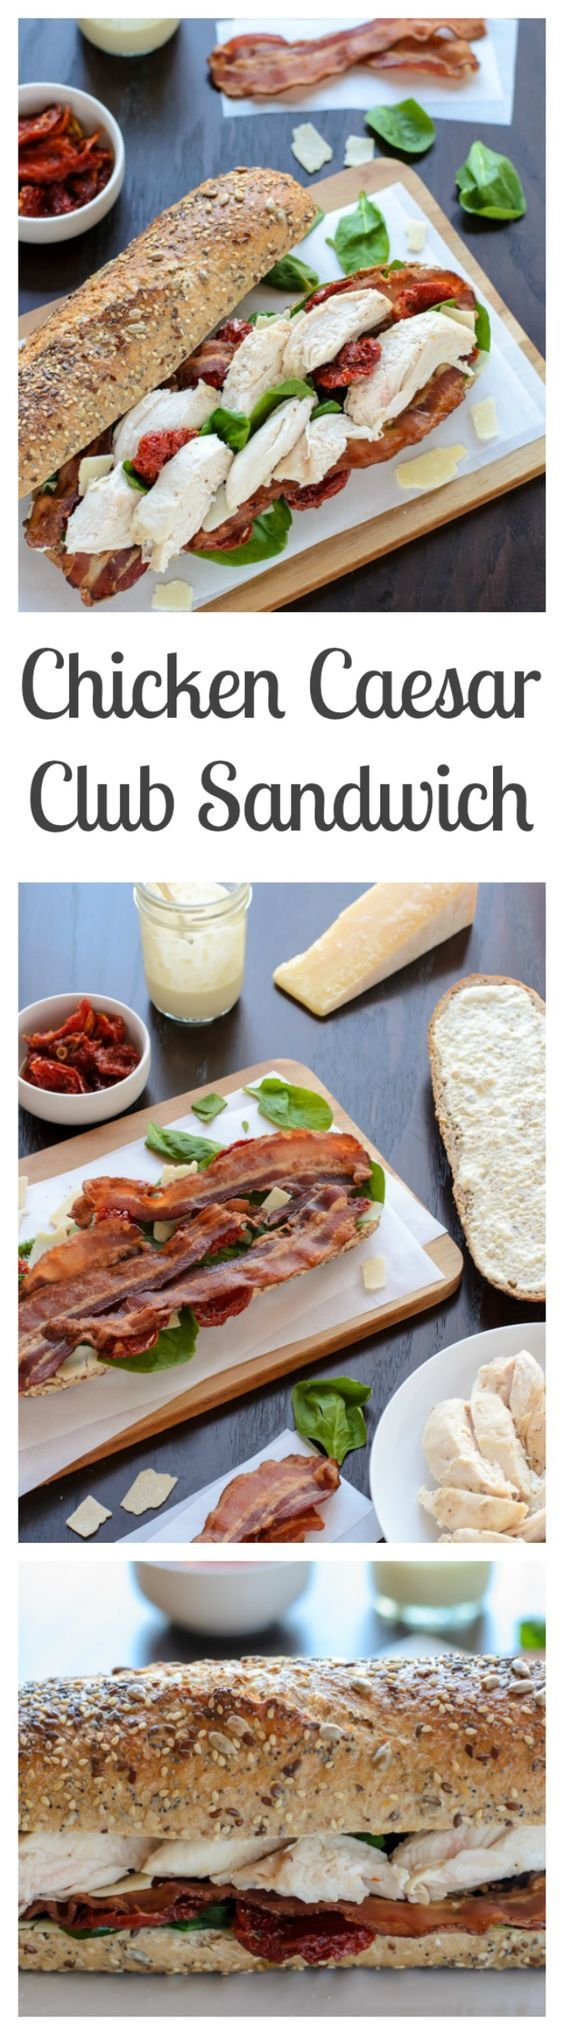 Light Chicken Caesar Club Sandwiches with Bacon. Our entire family loved this easy, healthy meal! {USA}